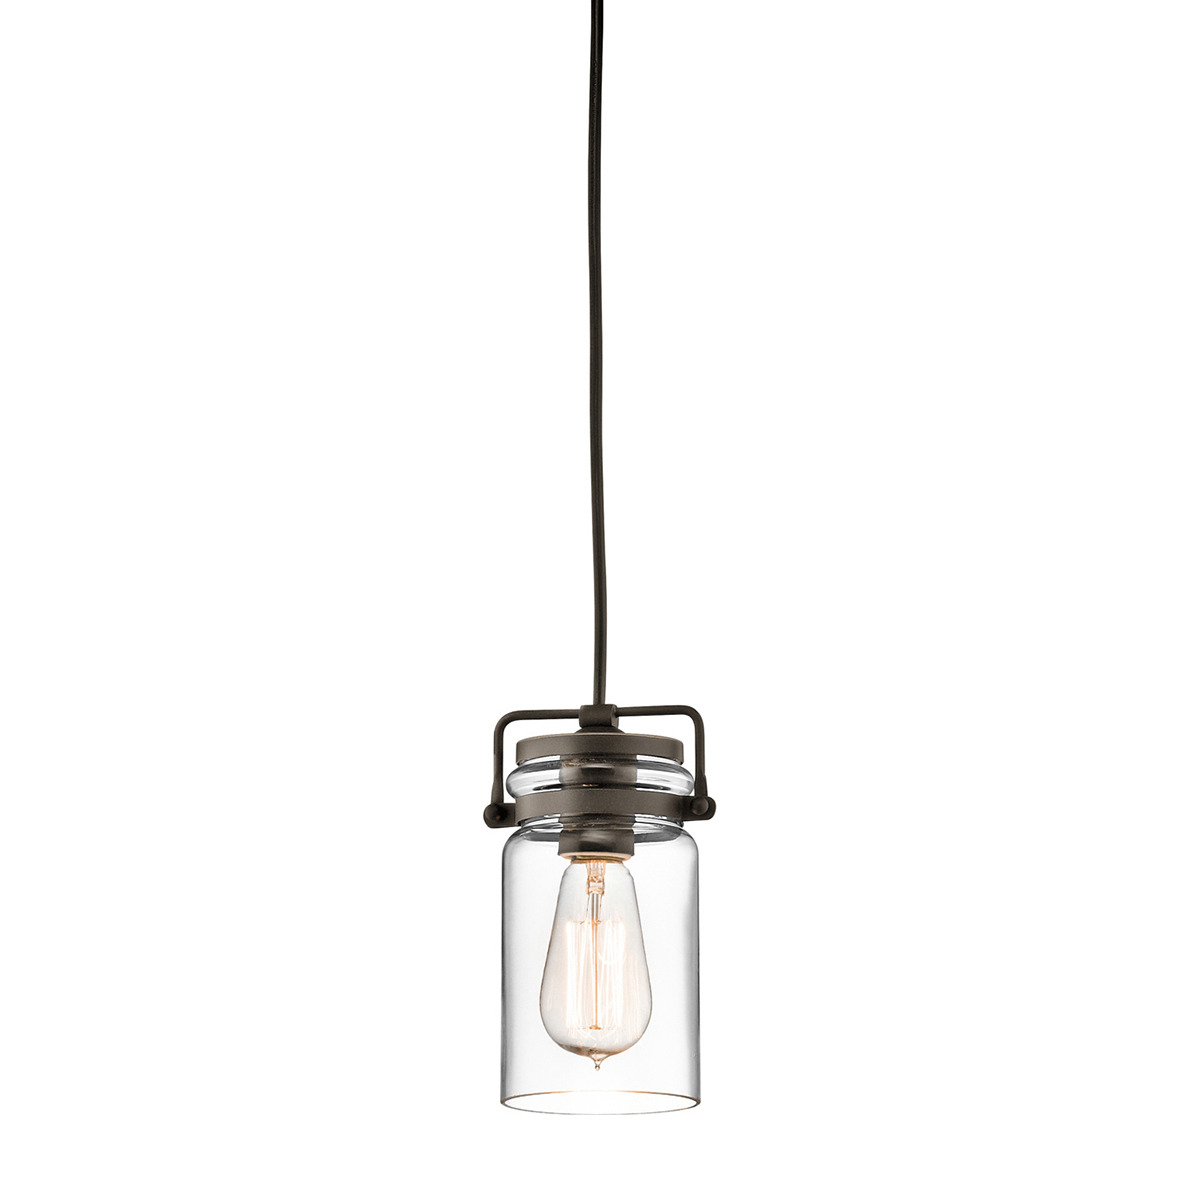 Kichler Lighting 42878oz Pendant Light Fixtures – Crescent Electric Supply Company With Erico 1 Light Single Bell Pendants (View 23 of 30)